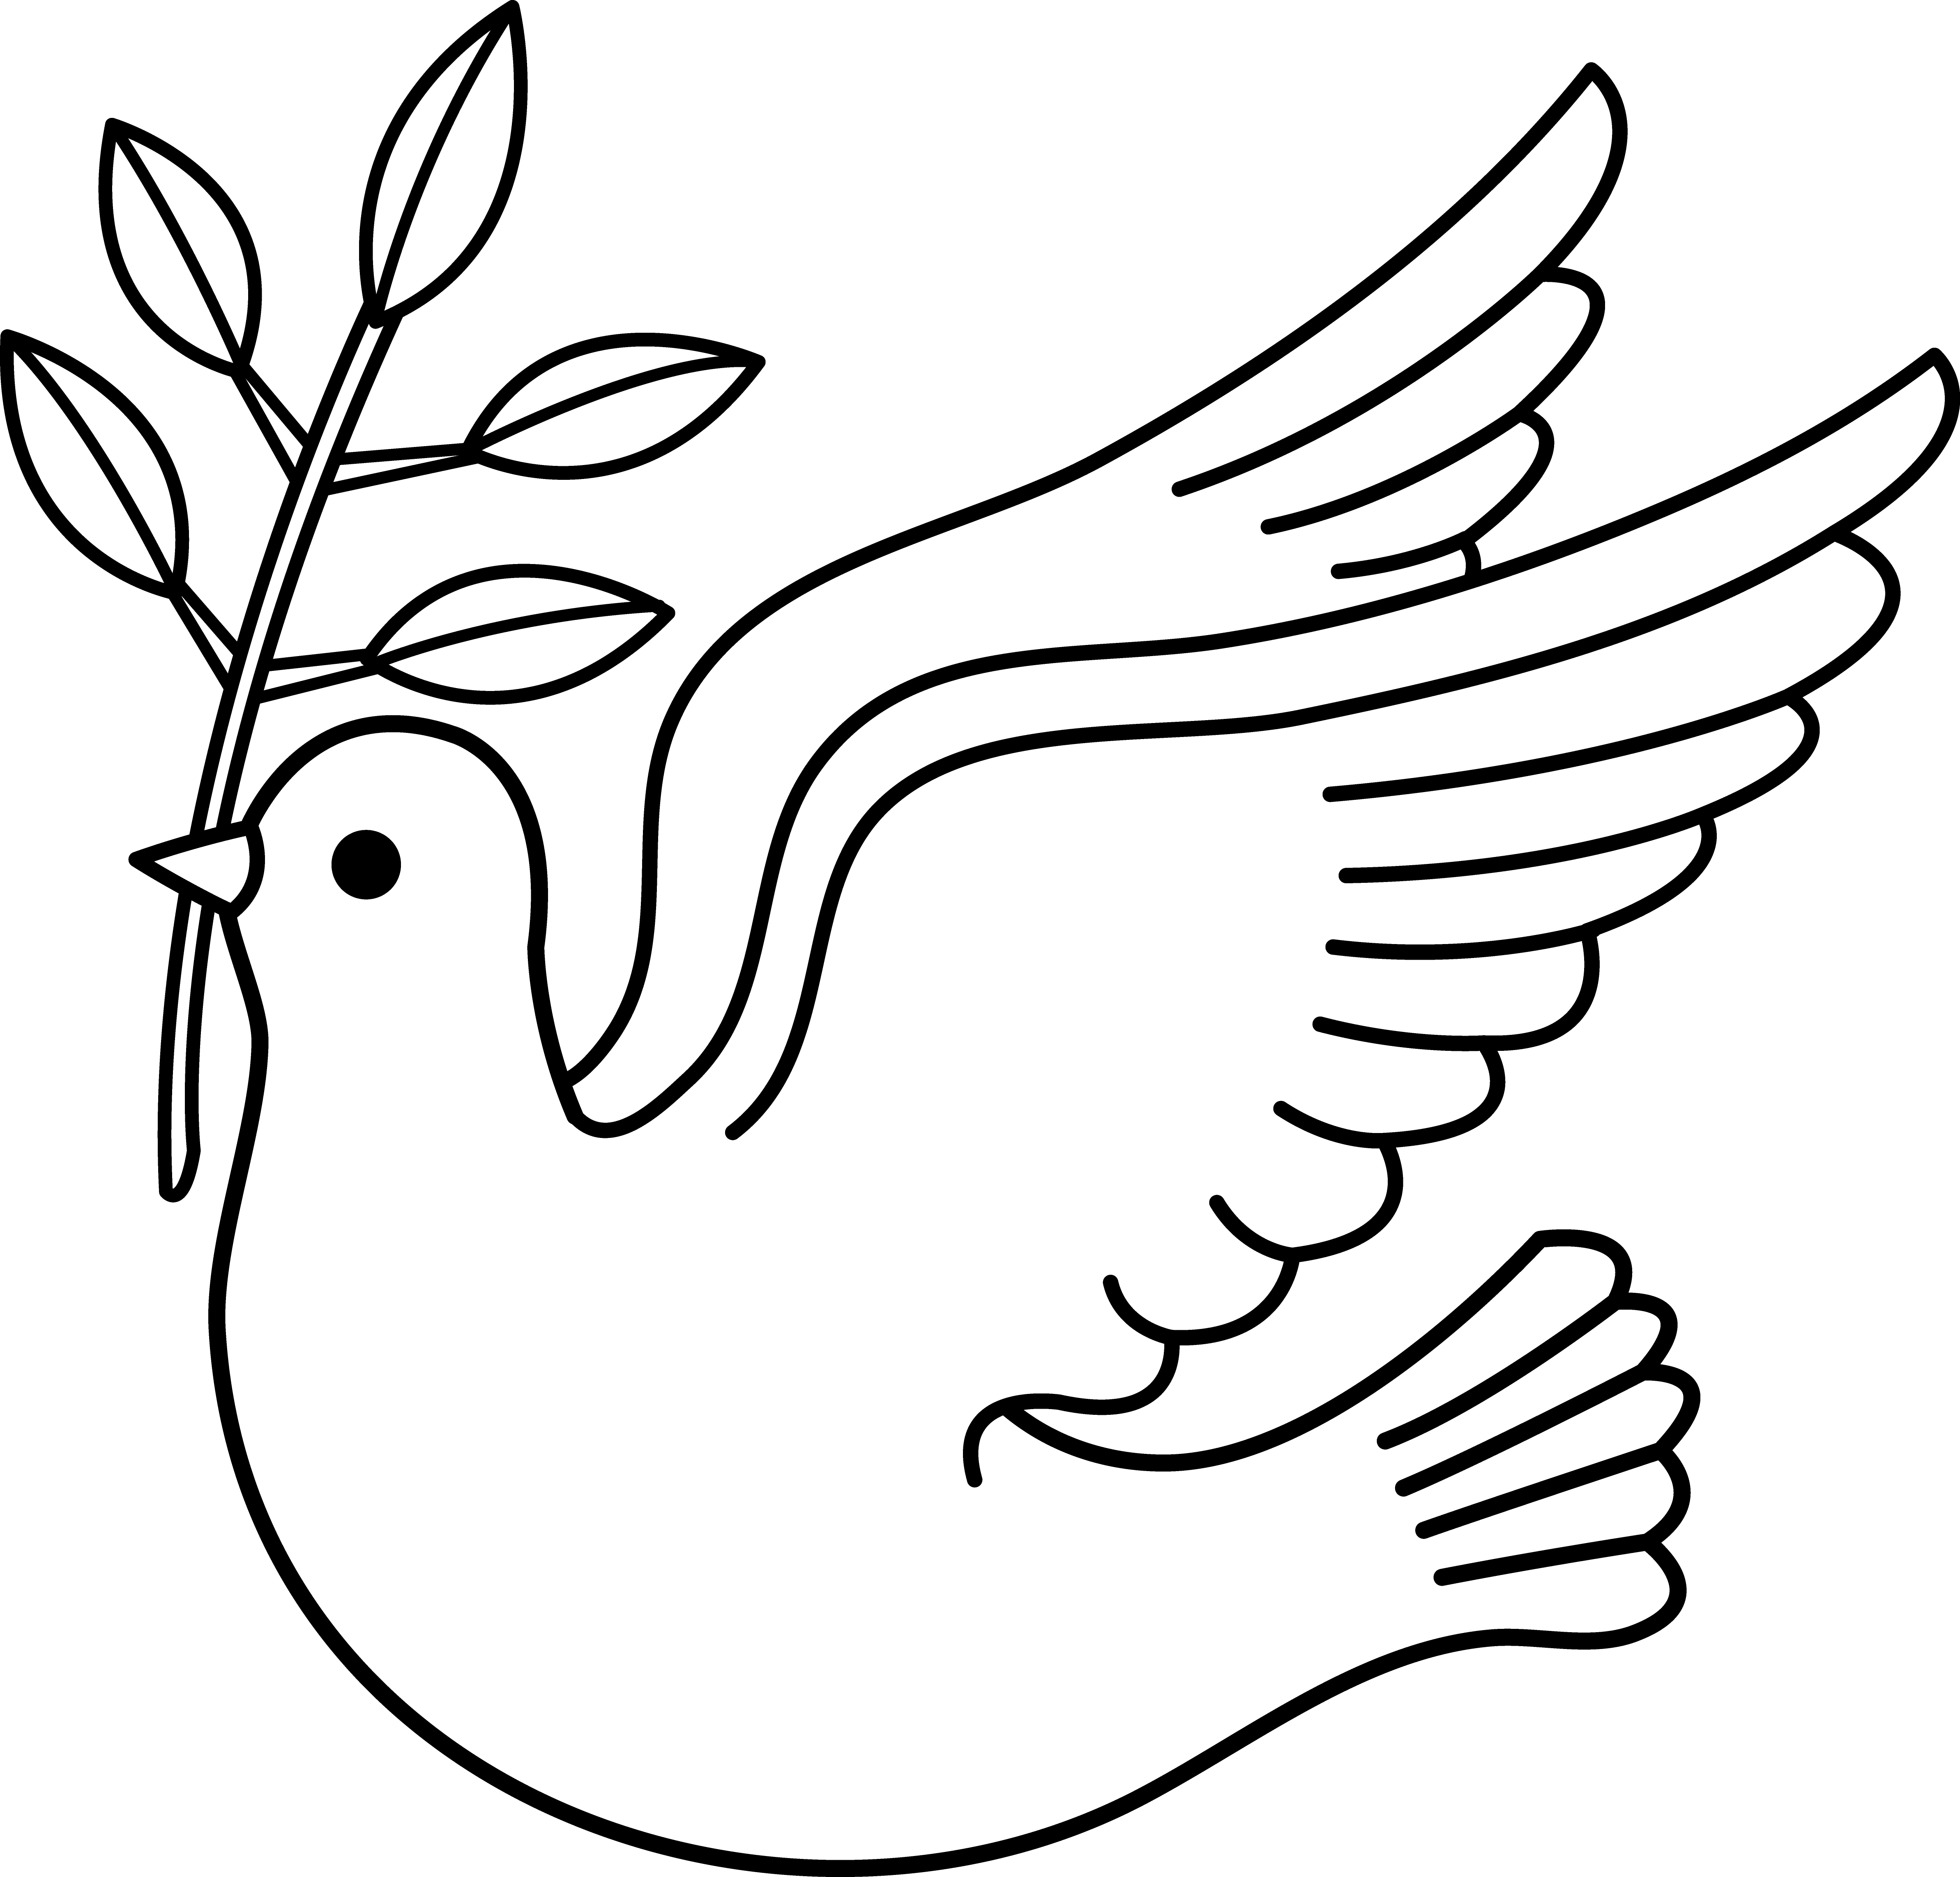 White Dove clipart #6, Download drawings